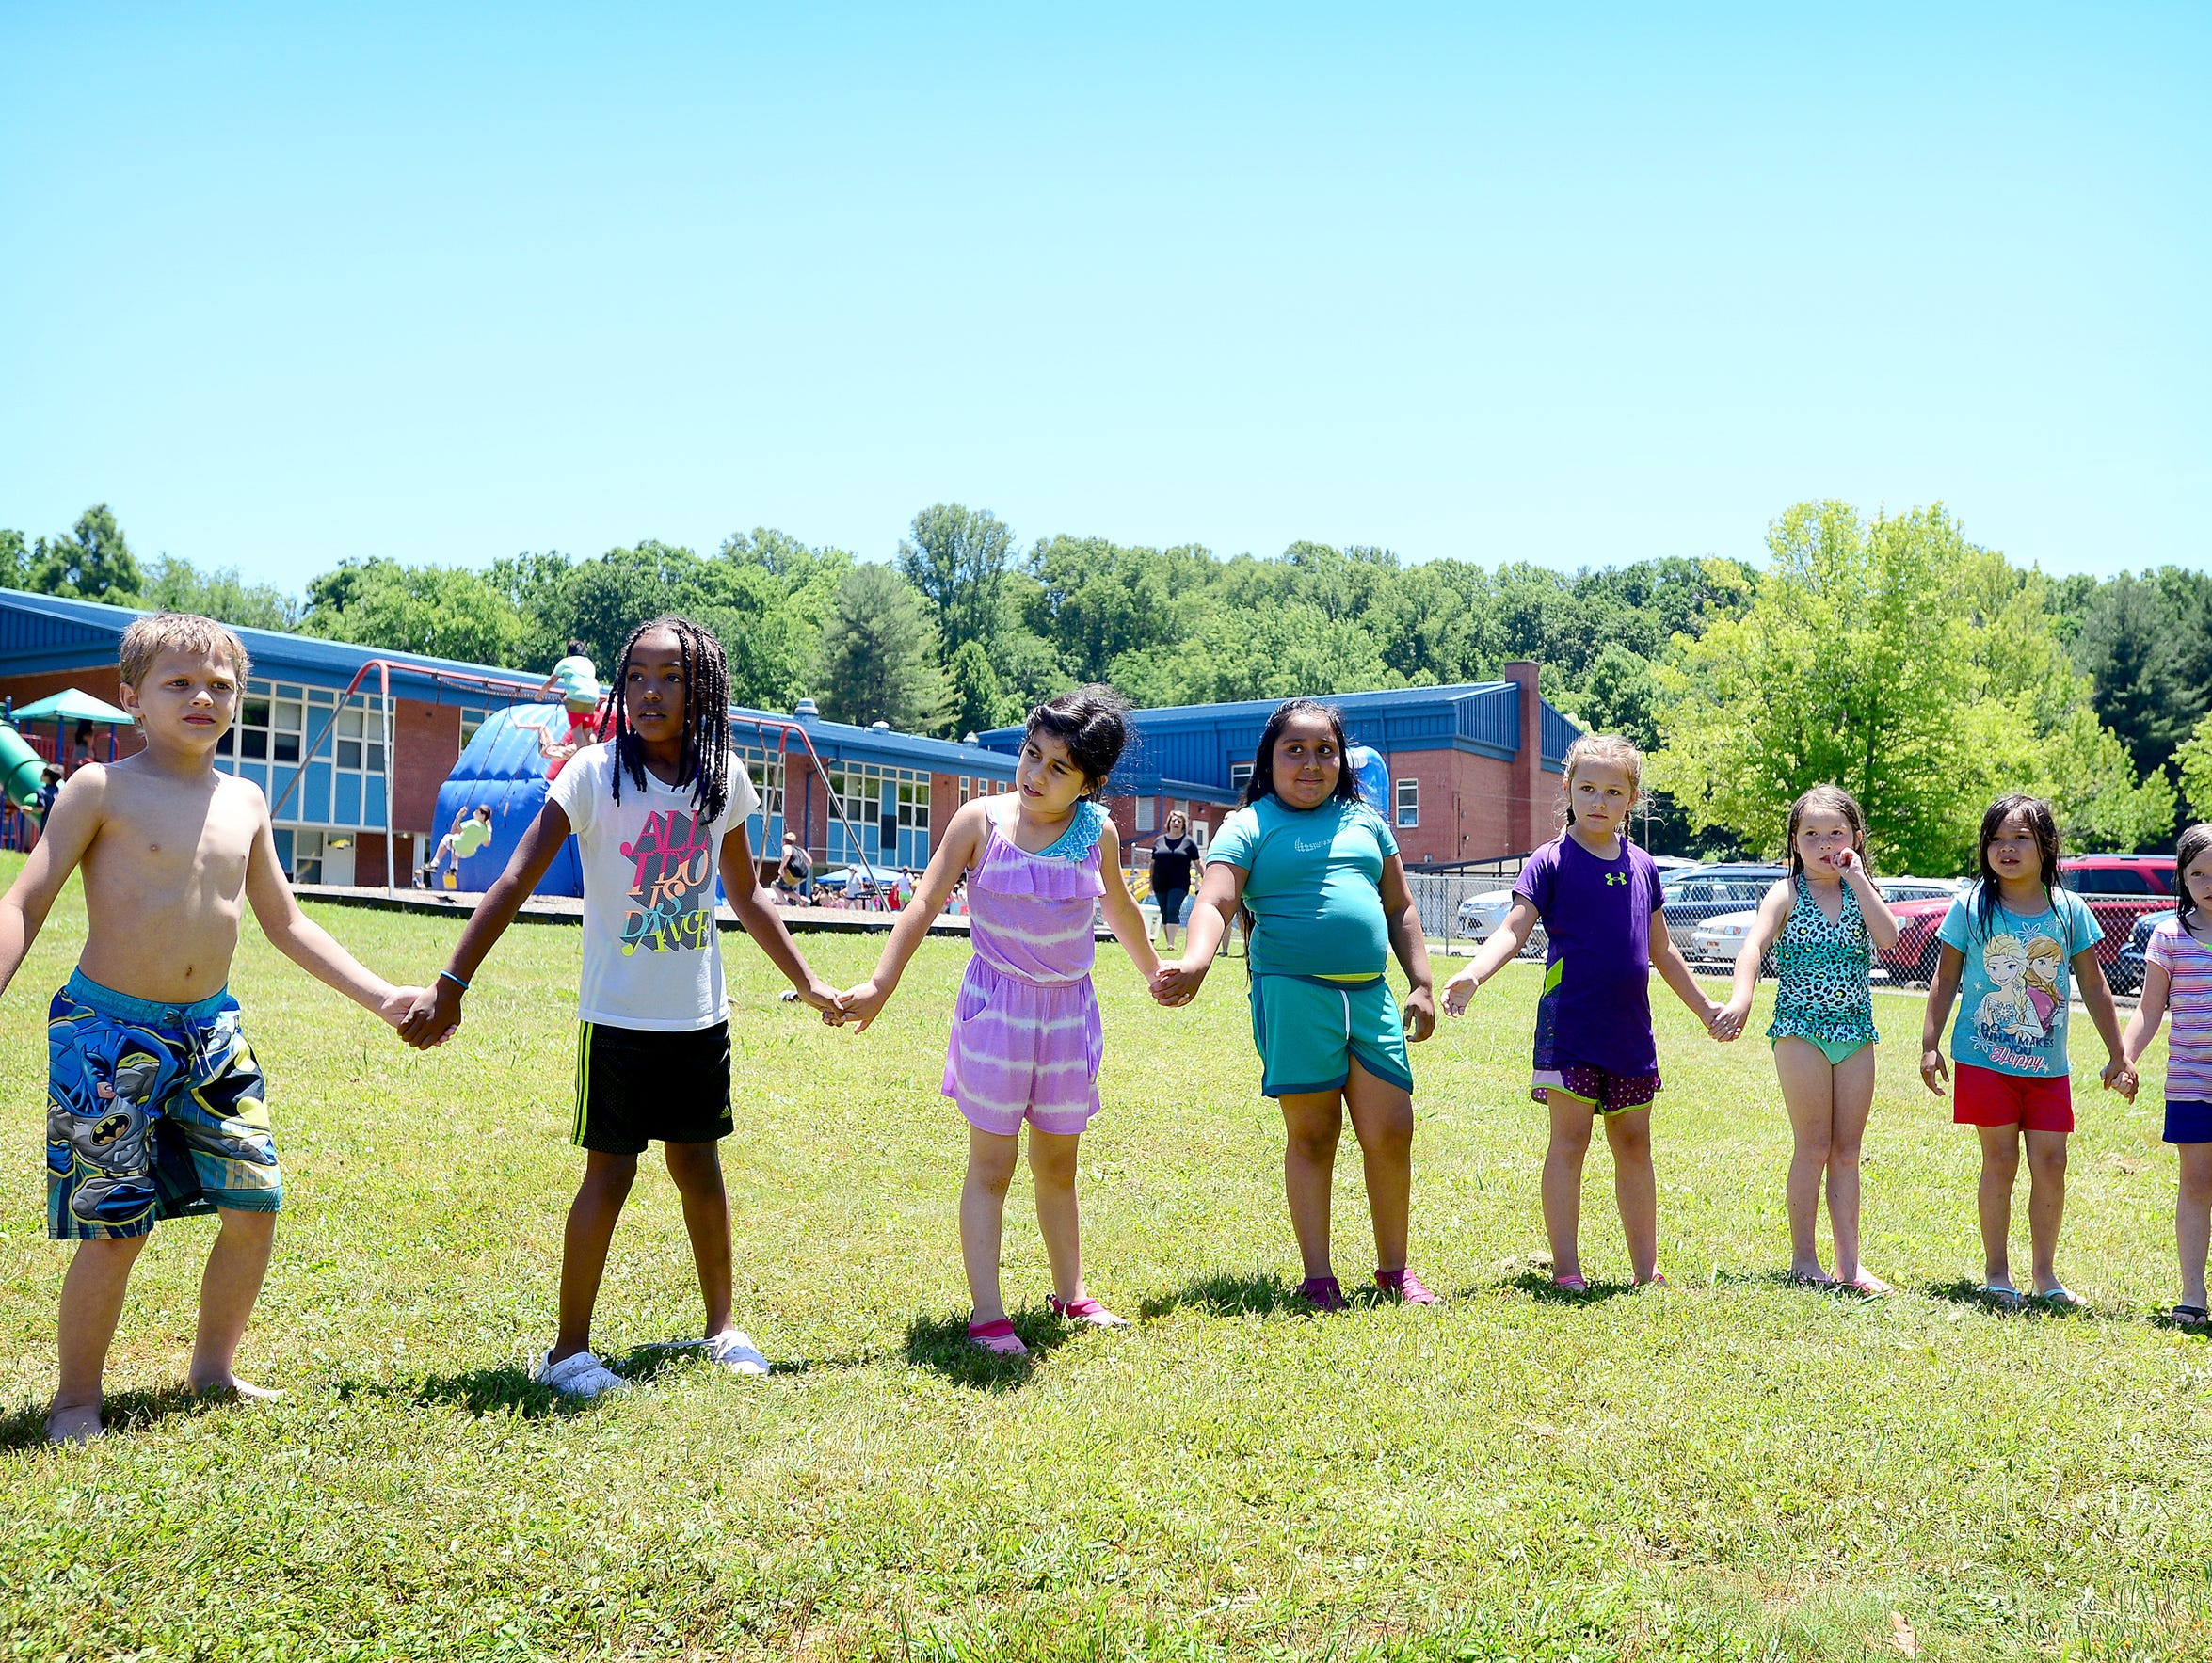 Students hold hands as they form a a circle to play